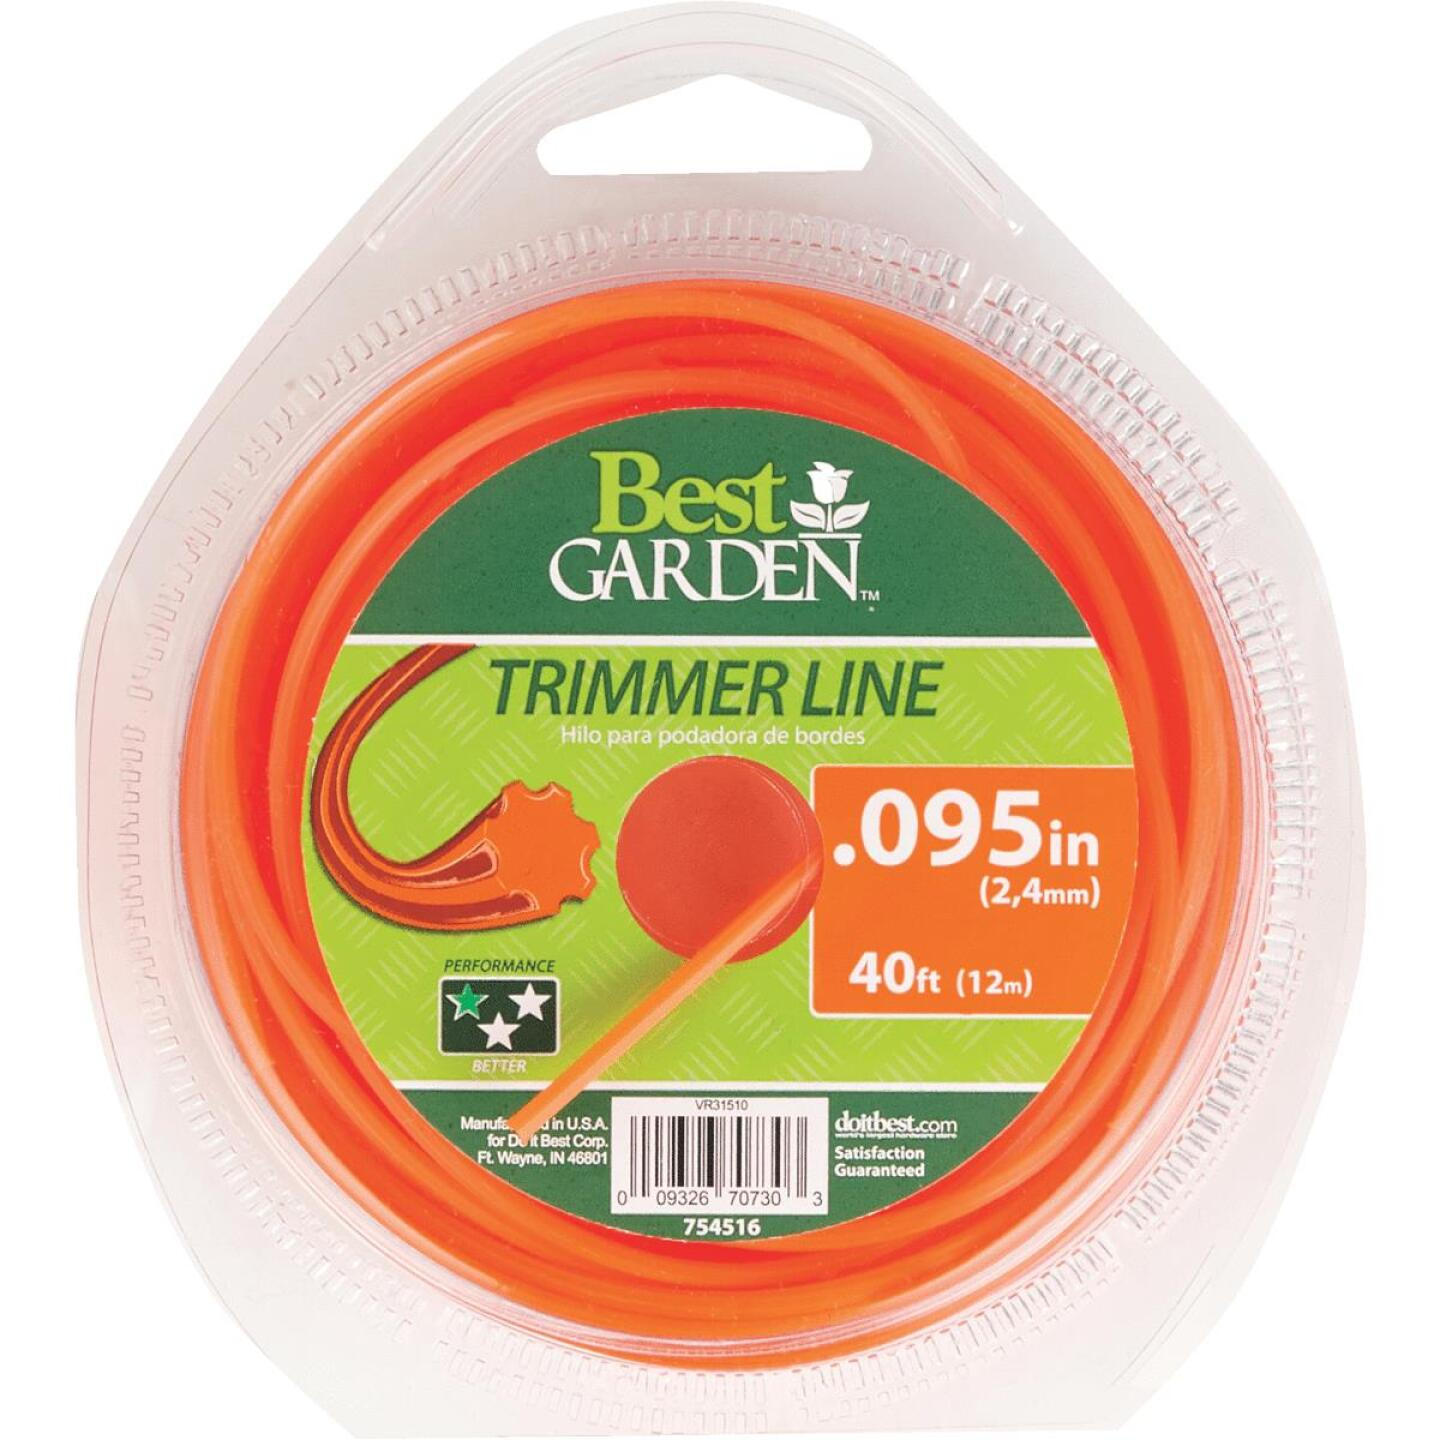 Best Garden 0.095 In. x 40 Ft. Round Trimmer Line Image 1